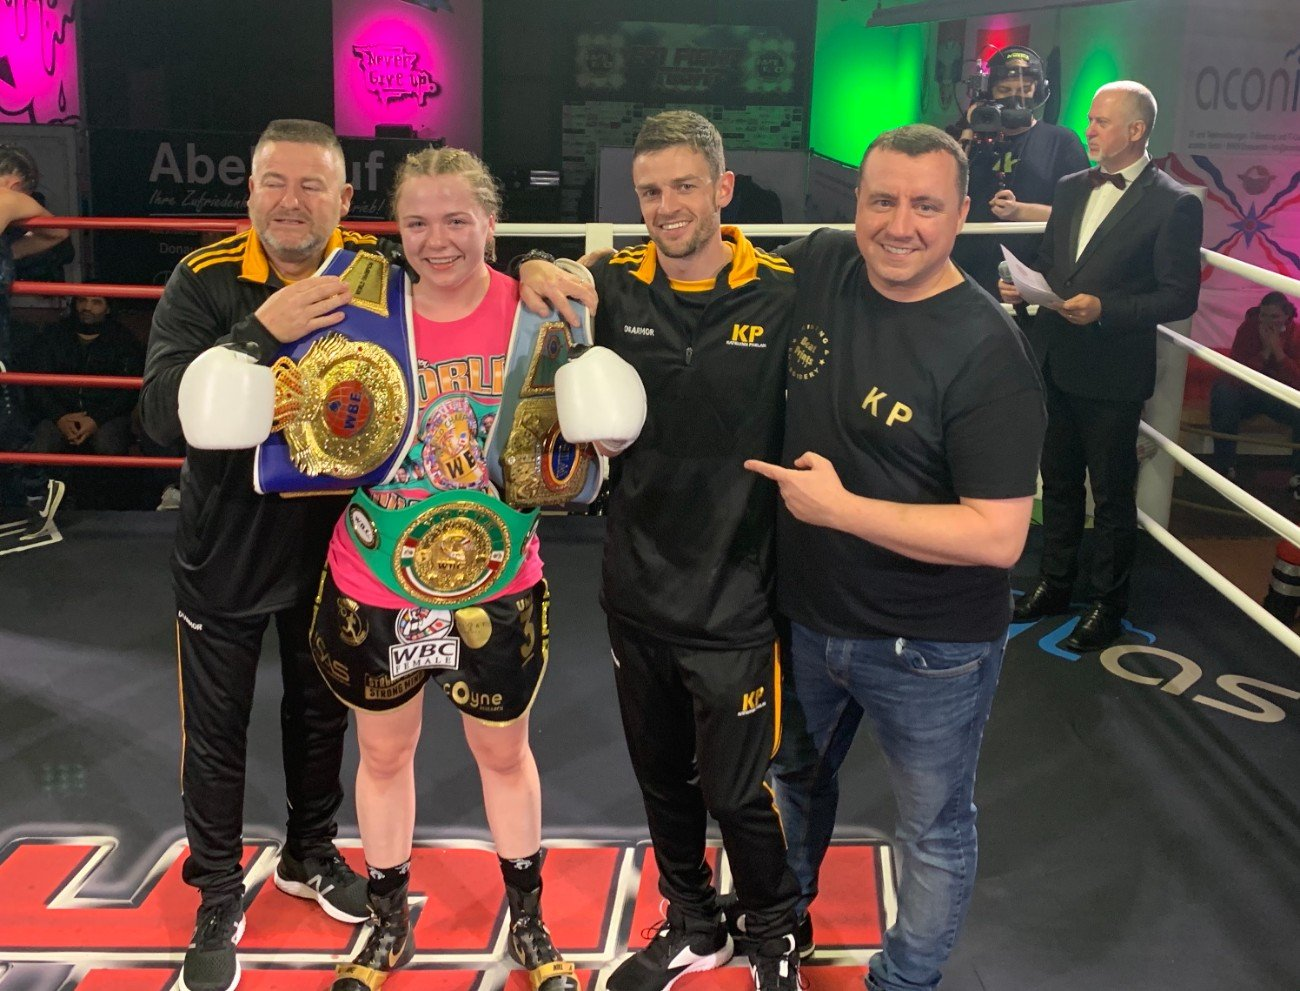 Jessica Schadko, Katelynn Phelan - Katelynn Phelan from Kildare Town went into the proverbial lion's den on Saturday night in Germany and emerged with three belts and the women's boxing world's collective attention.